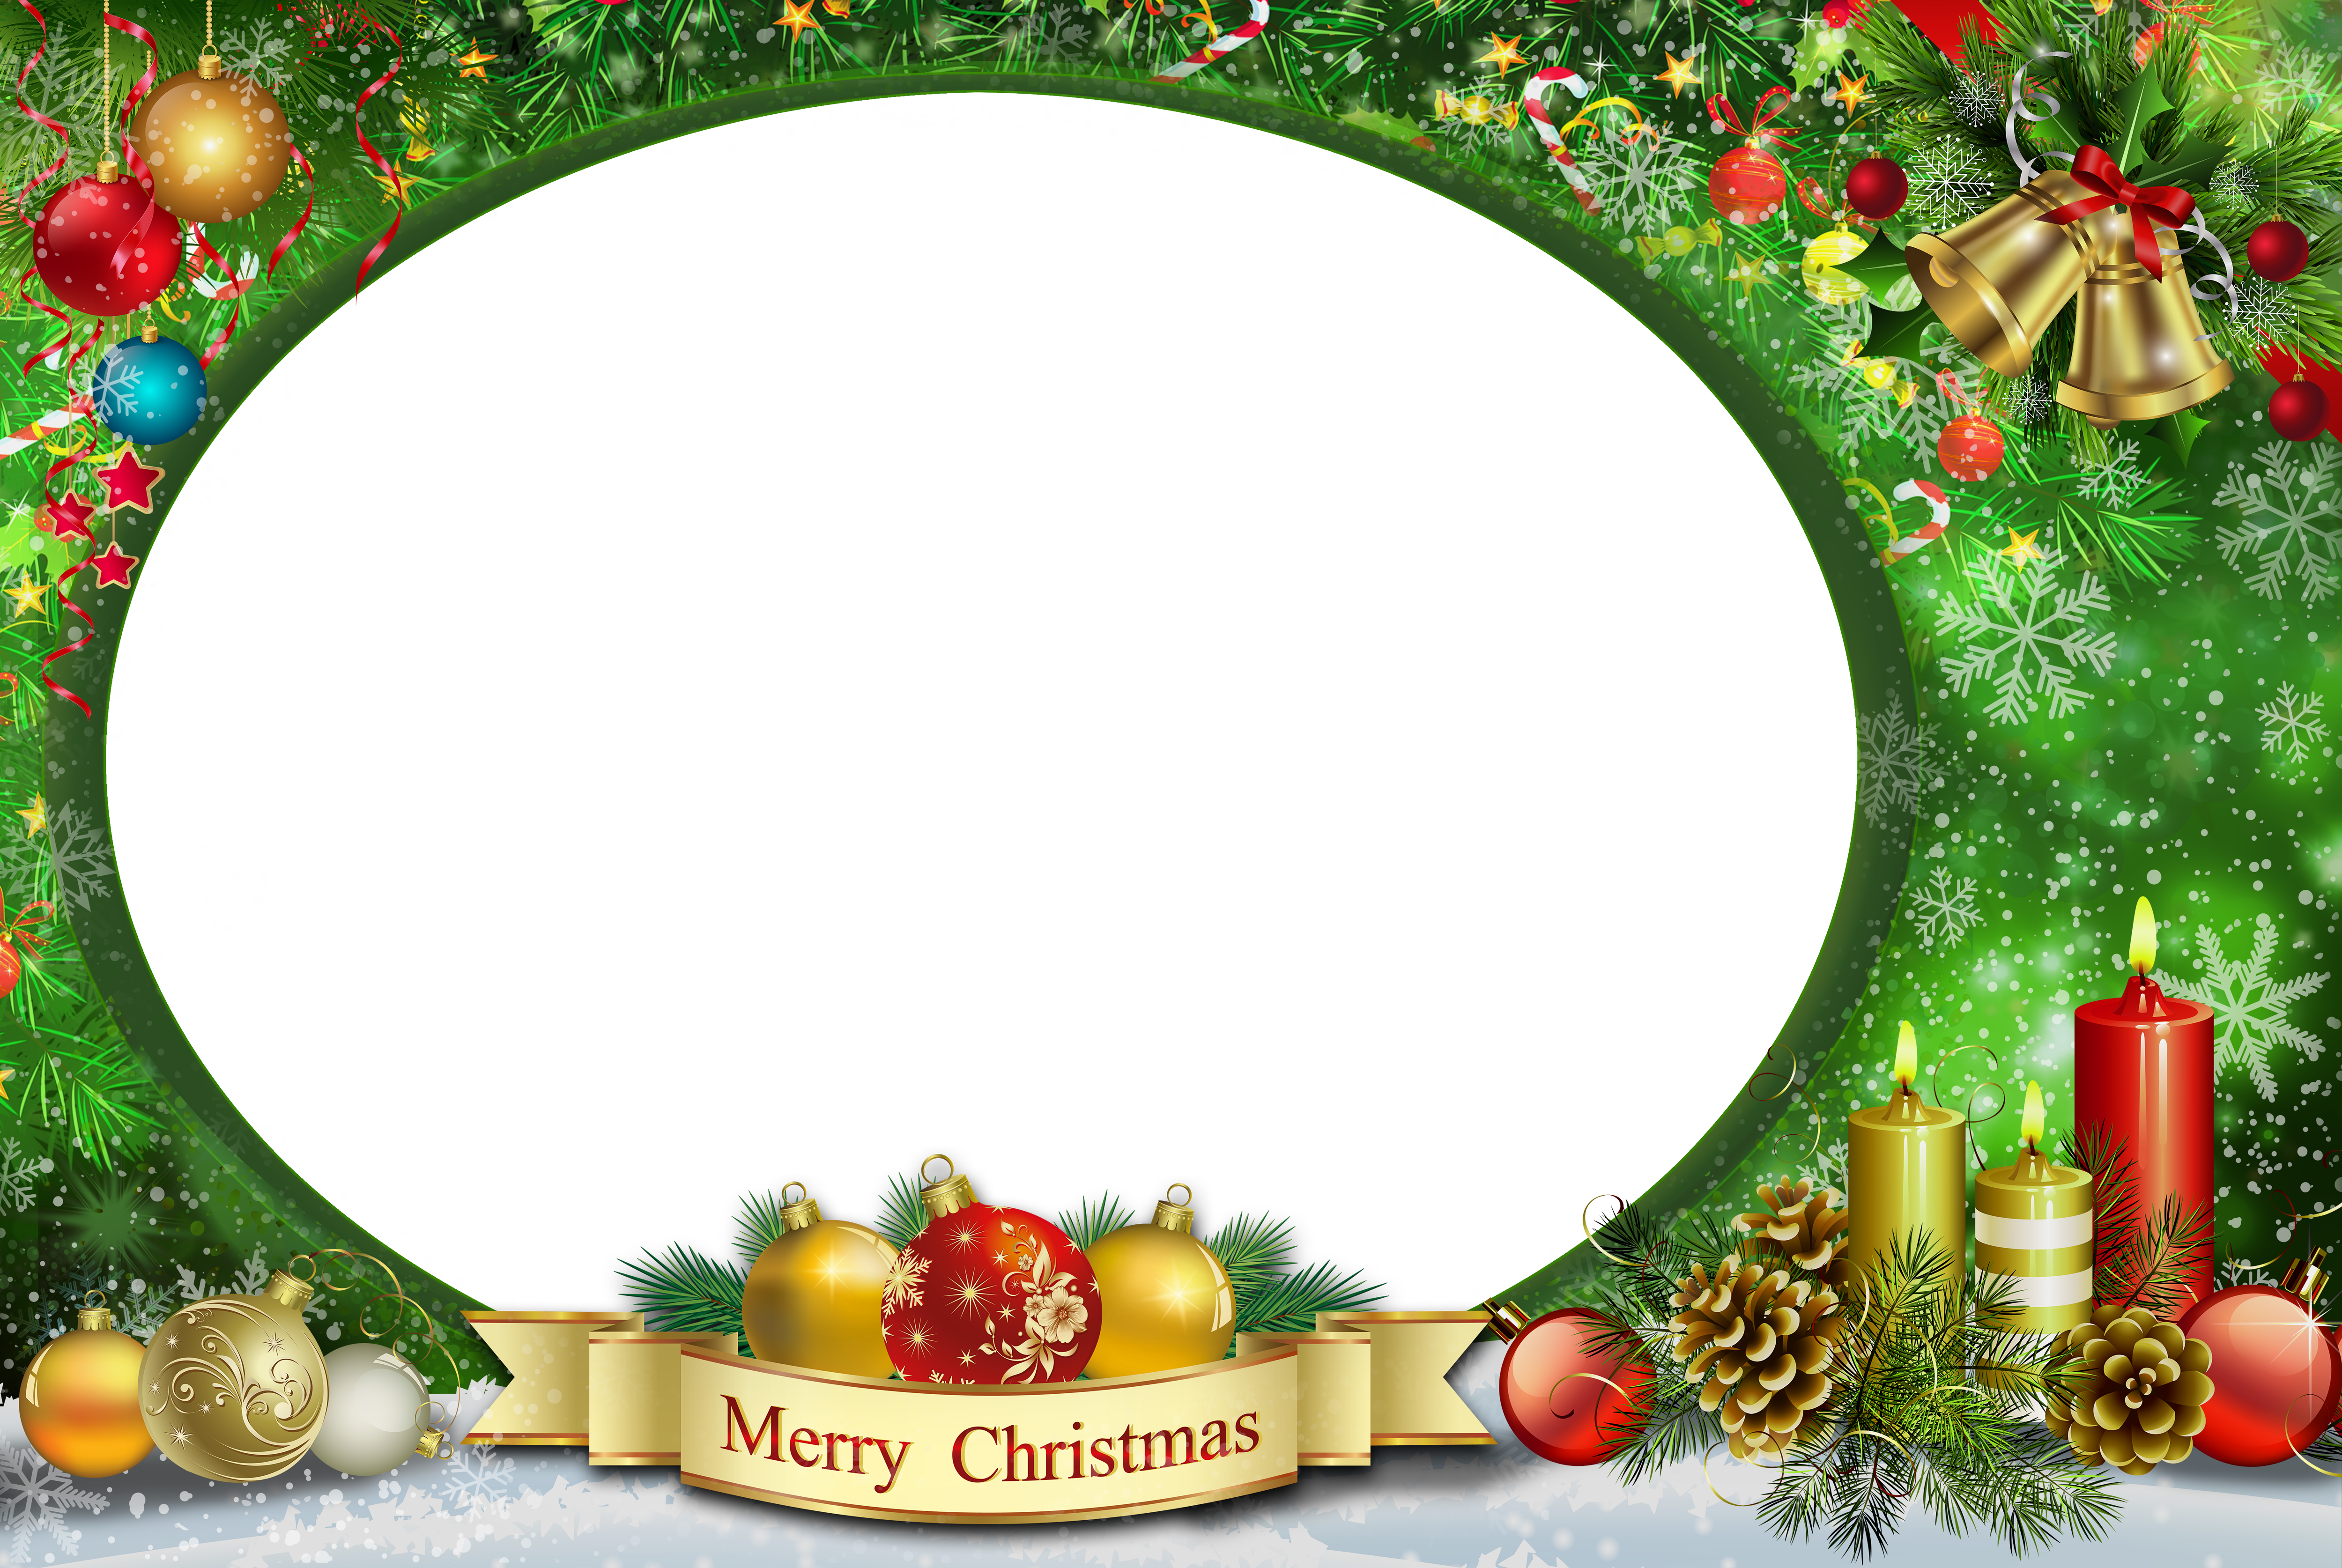 32+ Christmas frame clipart png information